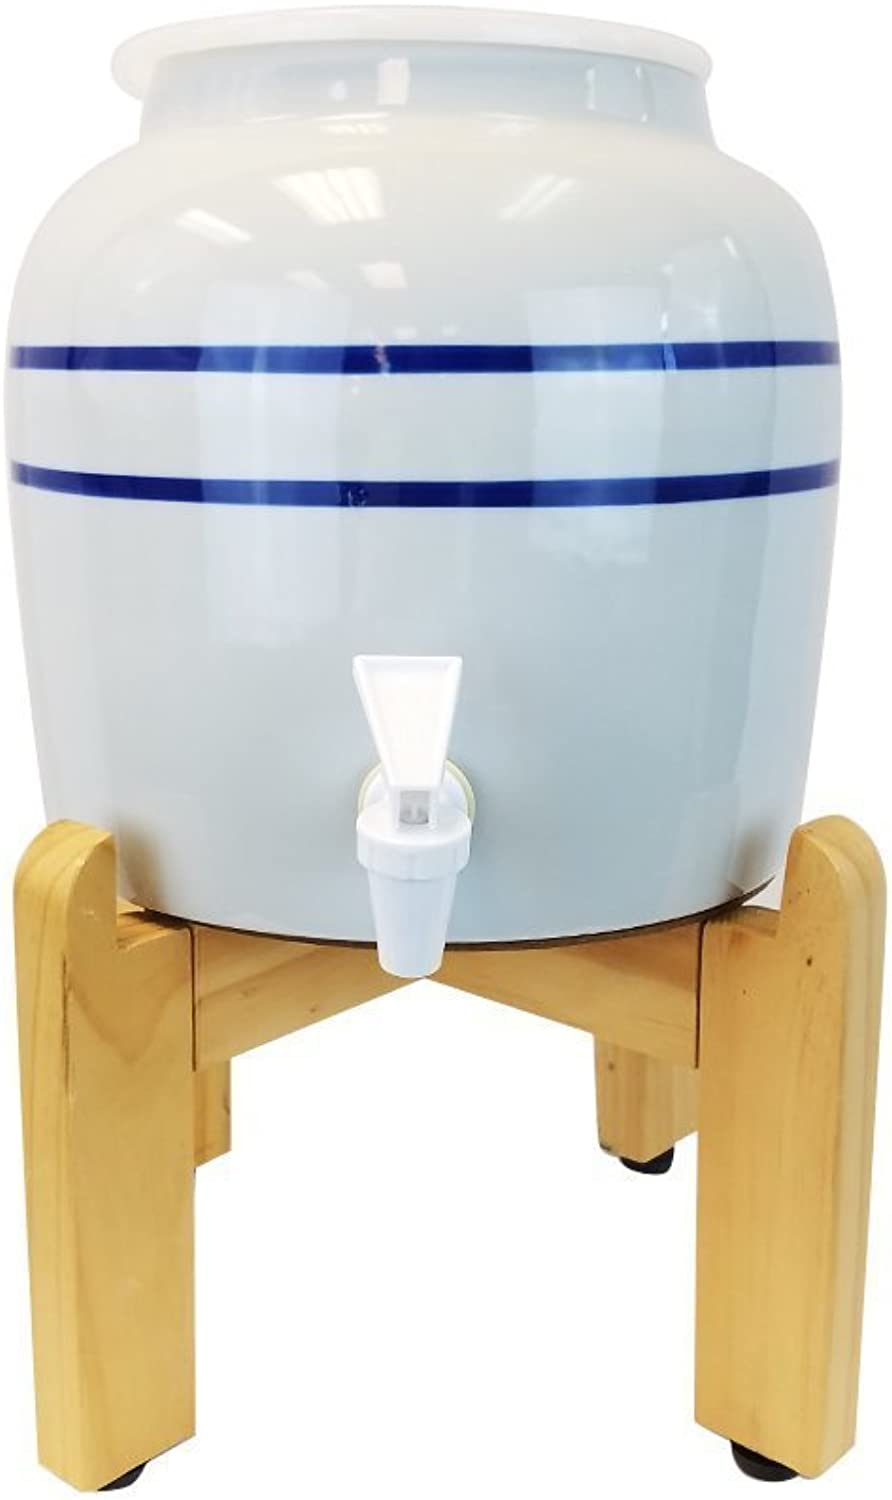 bluee Stripe Porcelain Water Crock Dispenser with a Wood Stand Fits 3 Gallon, 4 Gallon or 5 Gallon Drinking Water Bottles For Your Table or Countertop